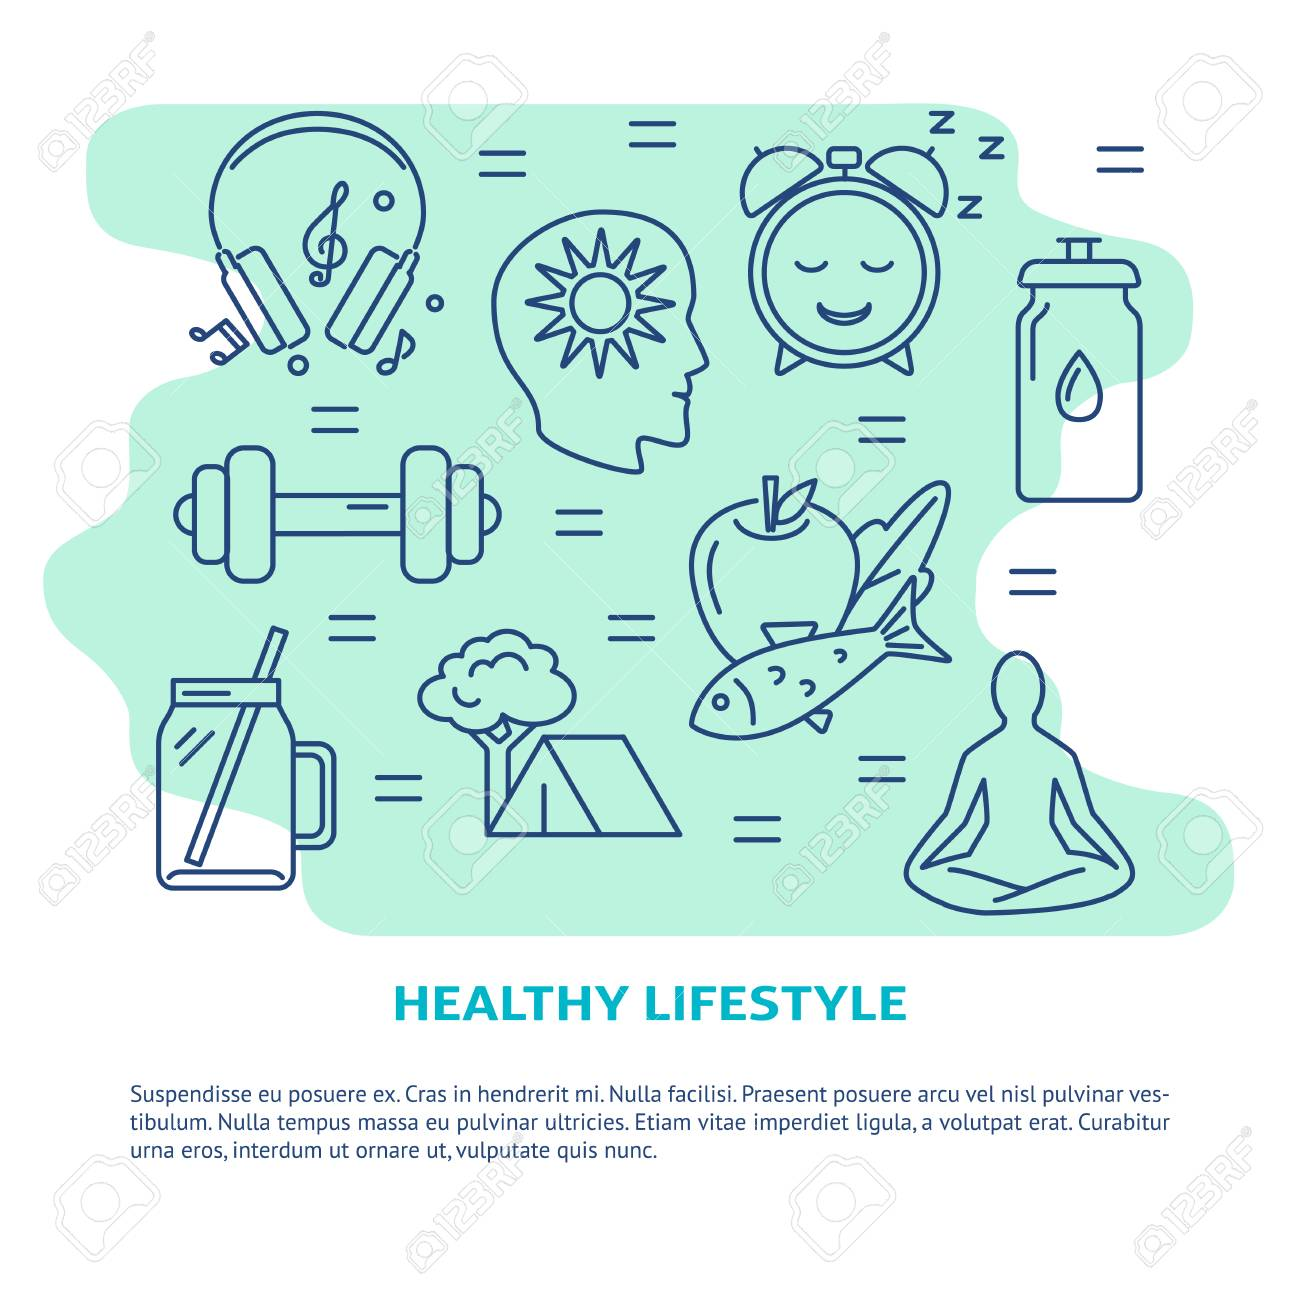 Healthy lifestyle concept banner in line style - 122117511